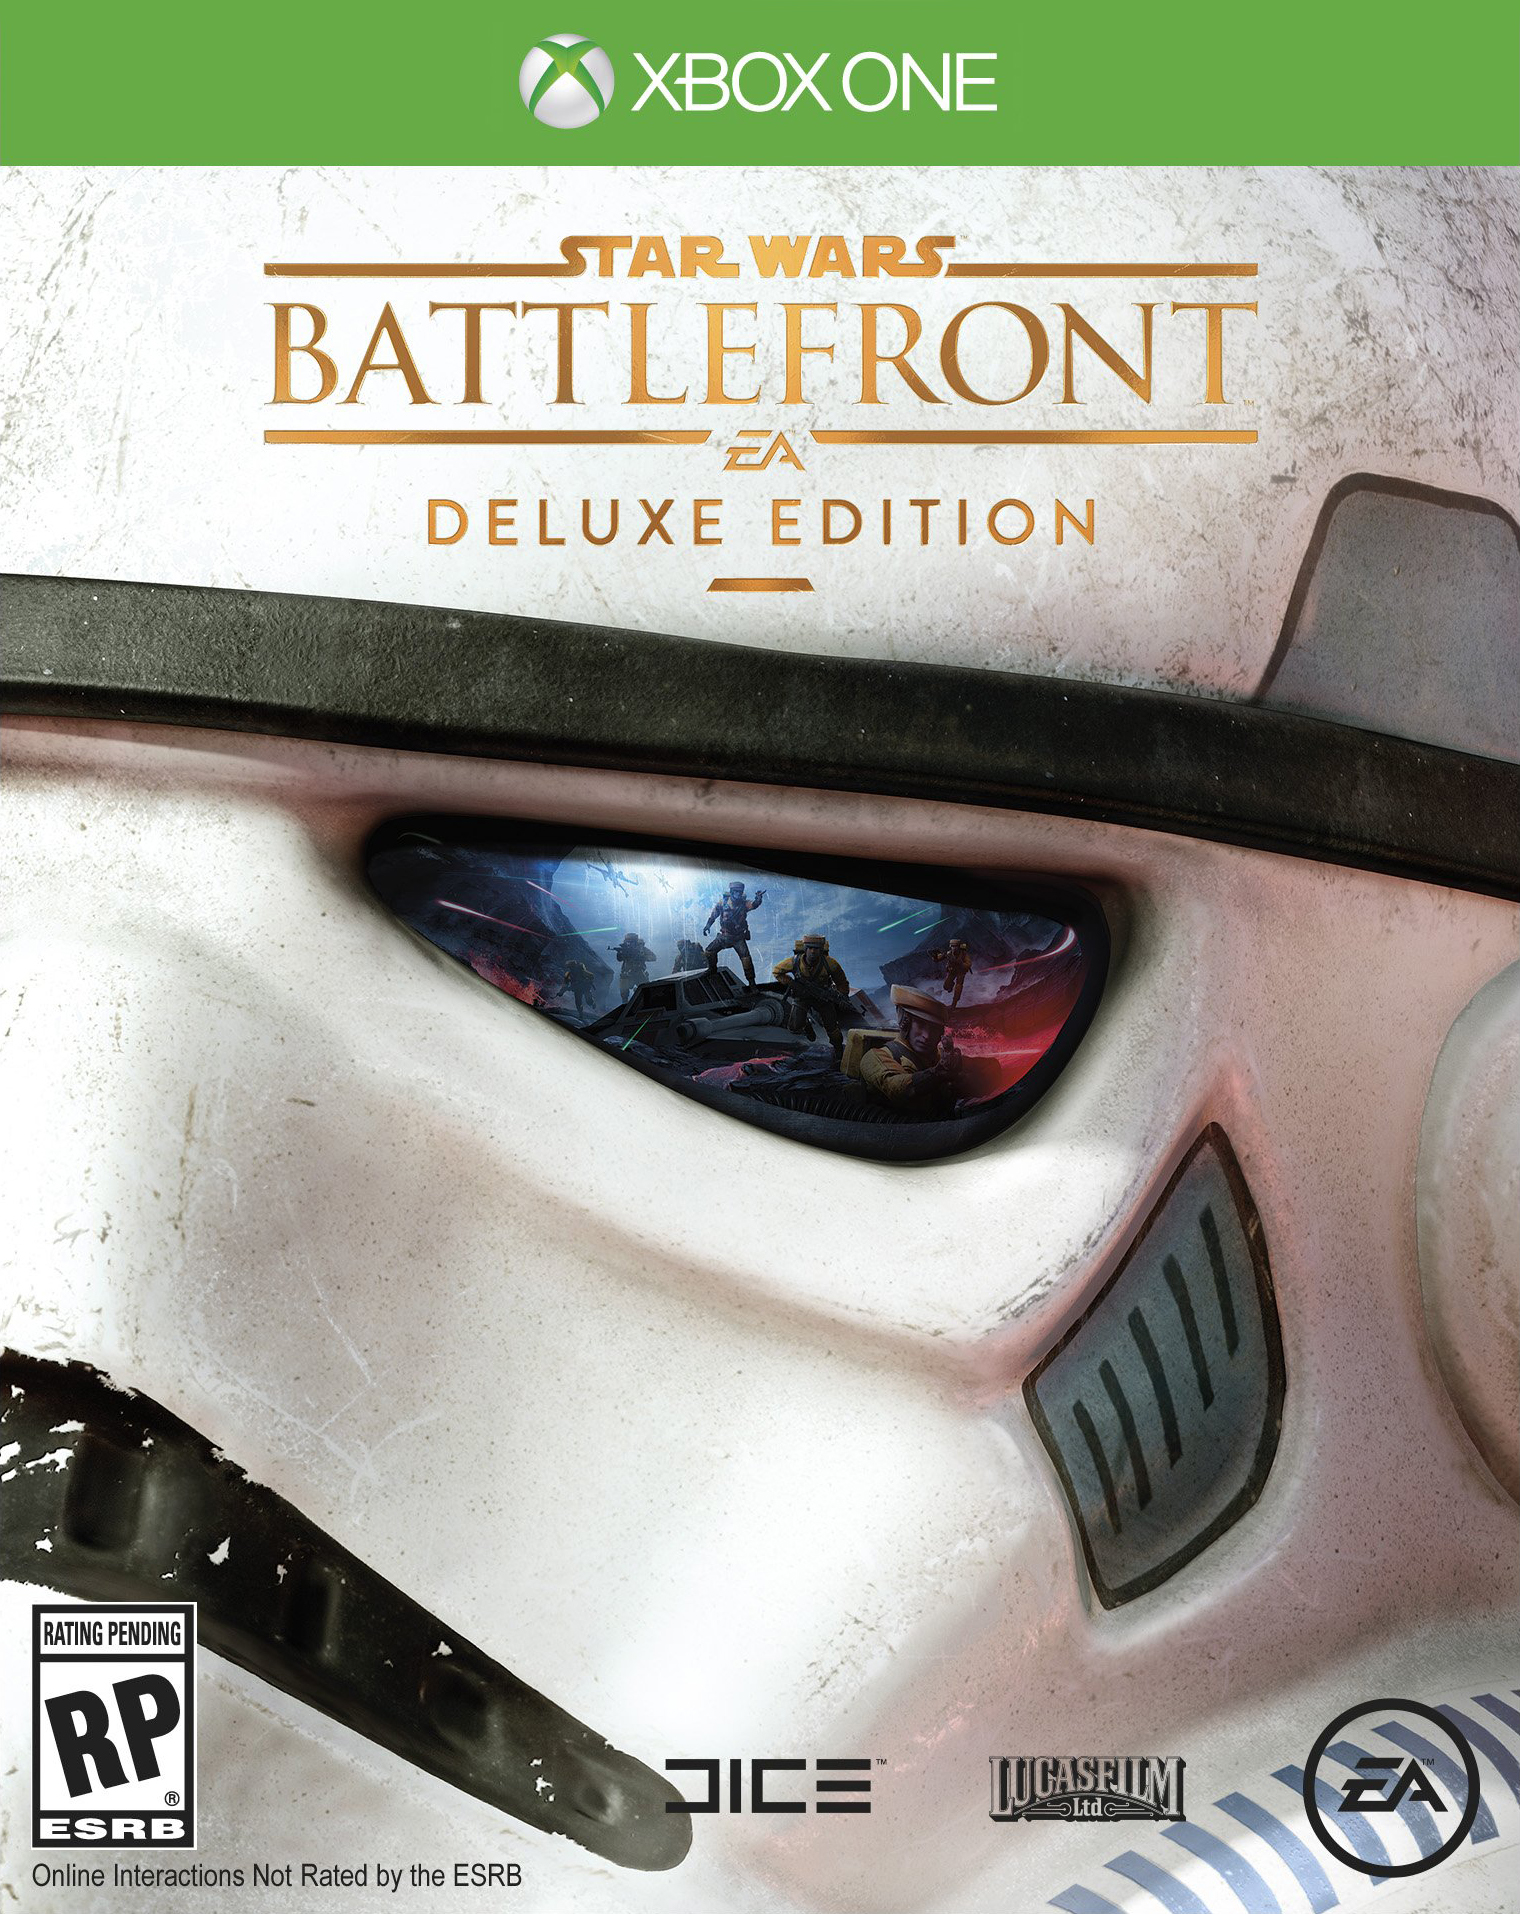 Star Wars Game For Xbox 1 : Star wars battlefront deluxe edition box art is rather